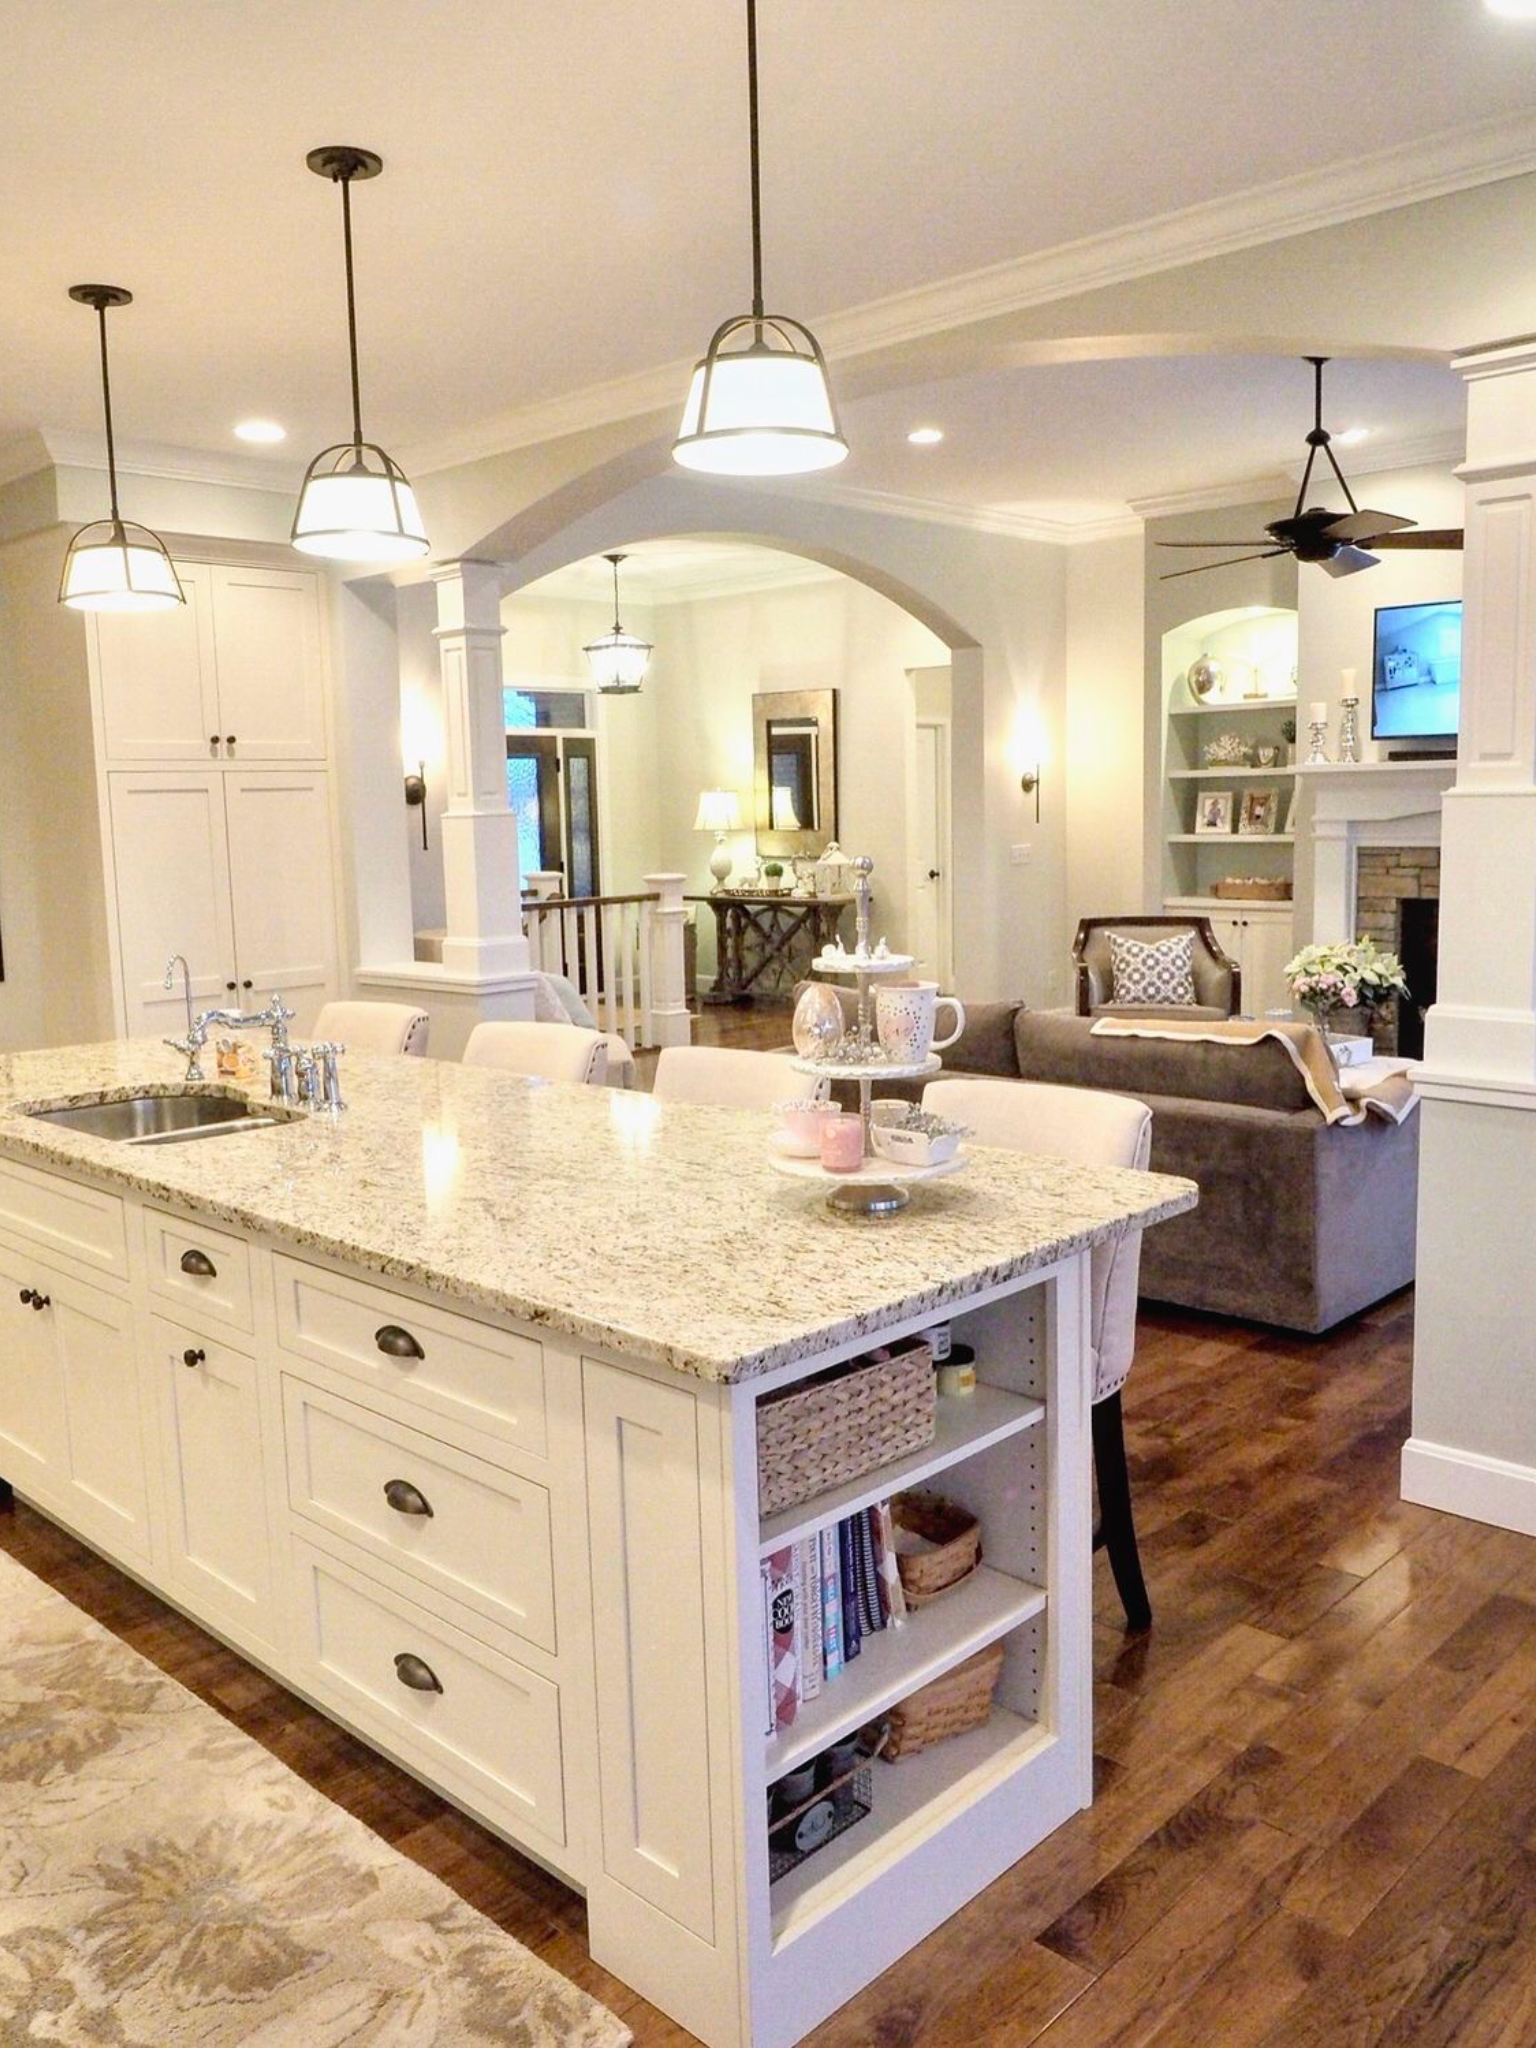 Off White Kitchen Images Endearing White Kitchen Offwhite Cabinets Sherwin Williams Conservative Design Decoration